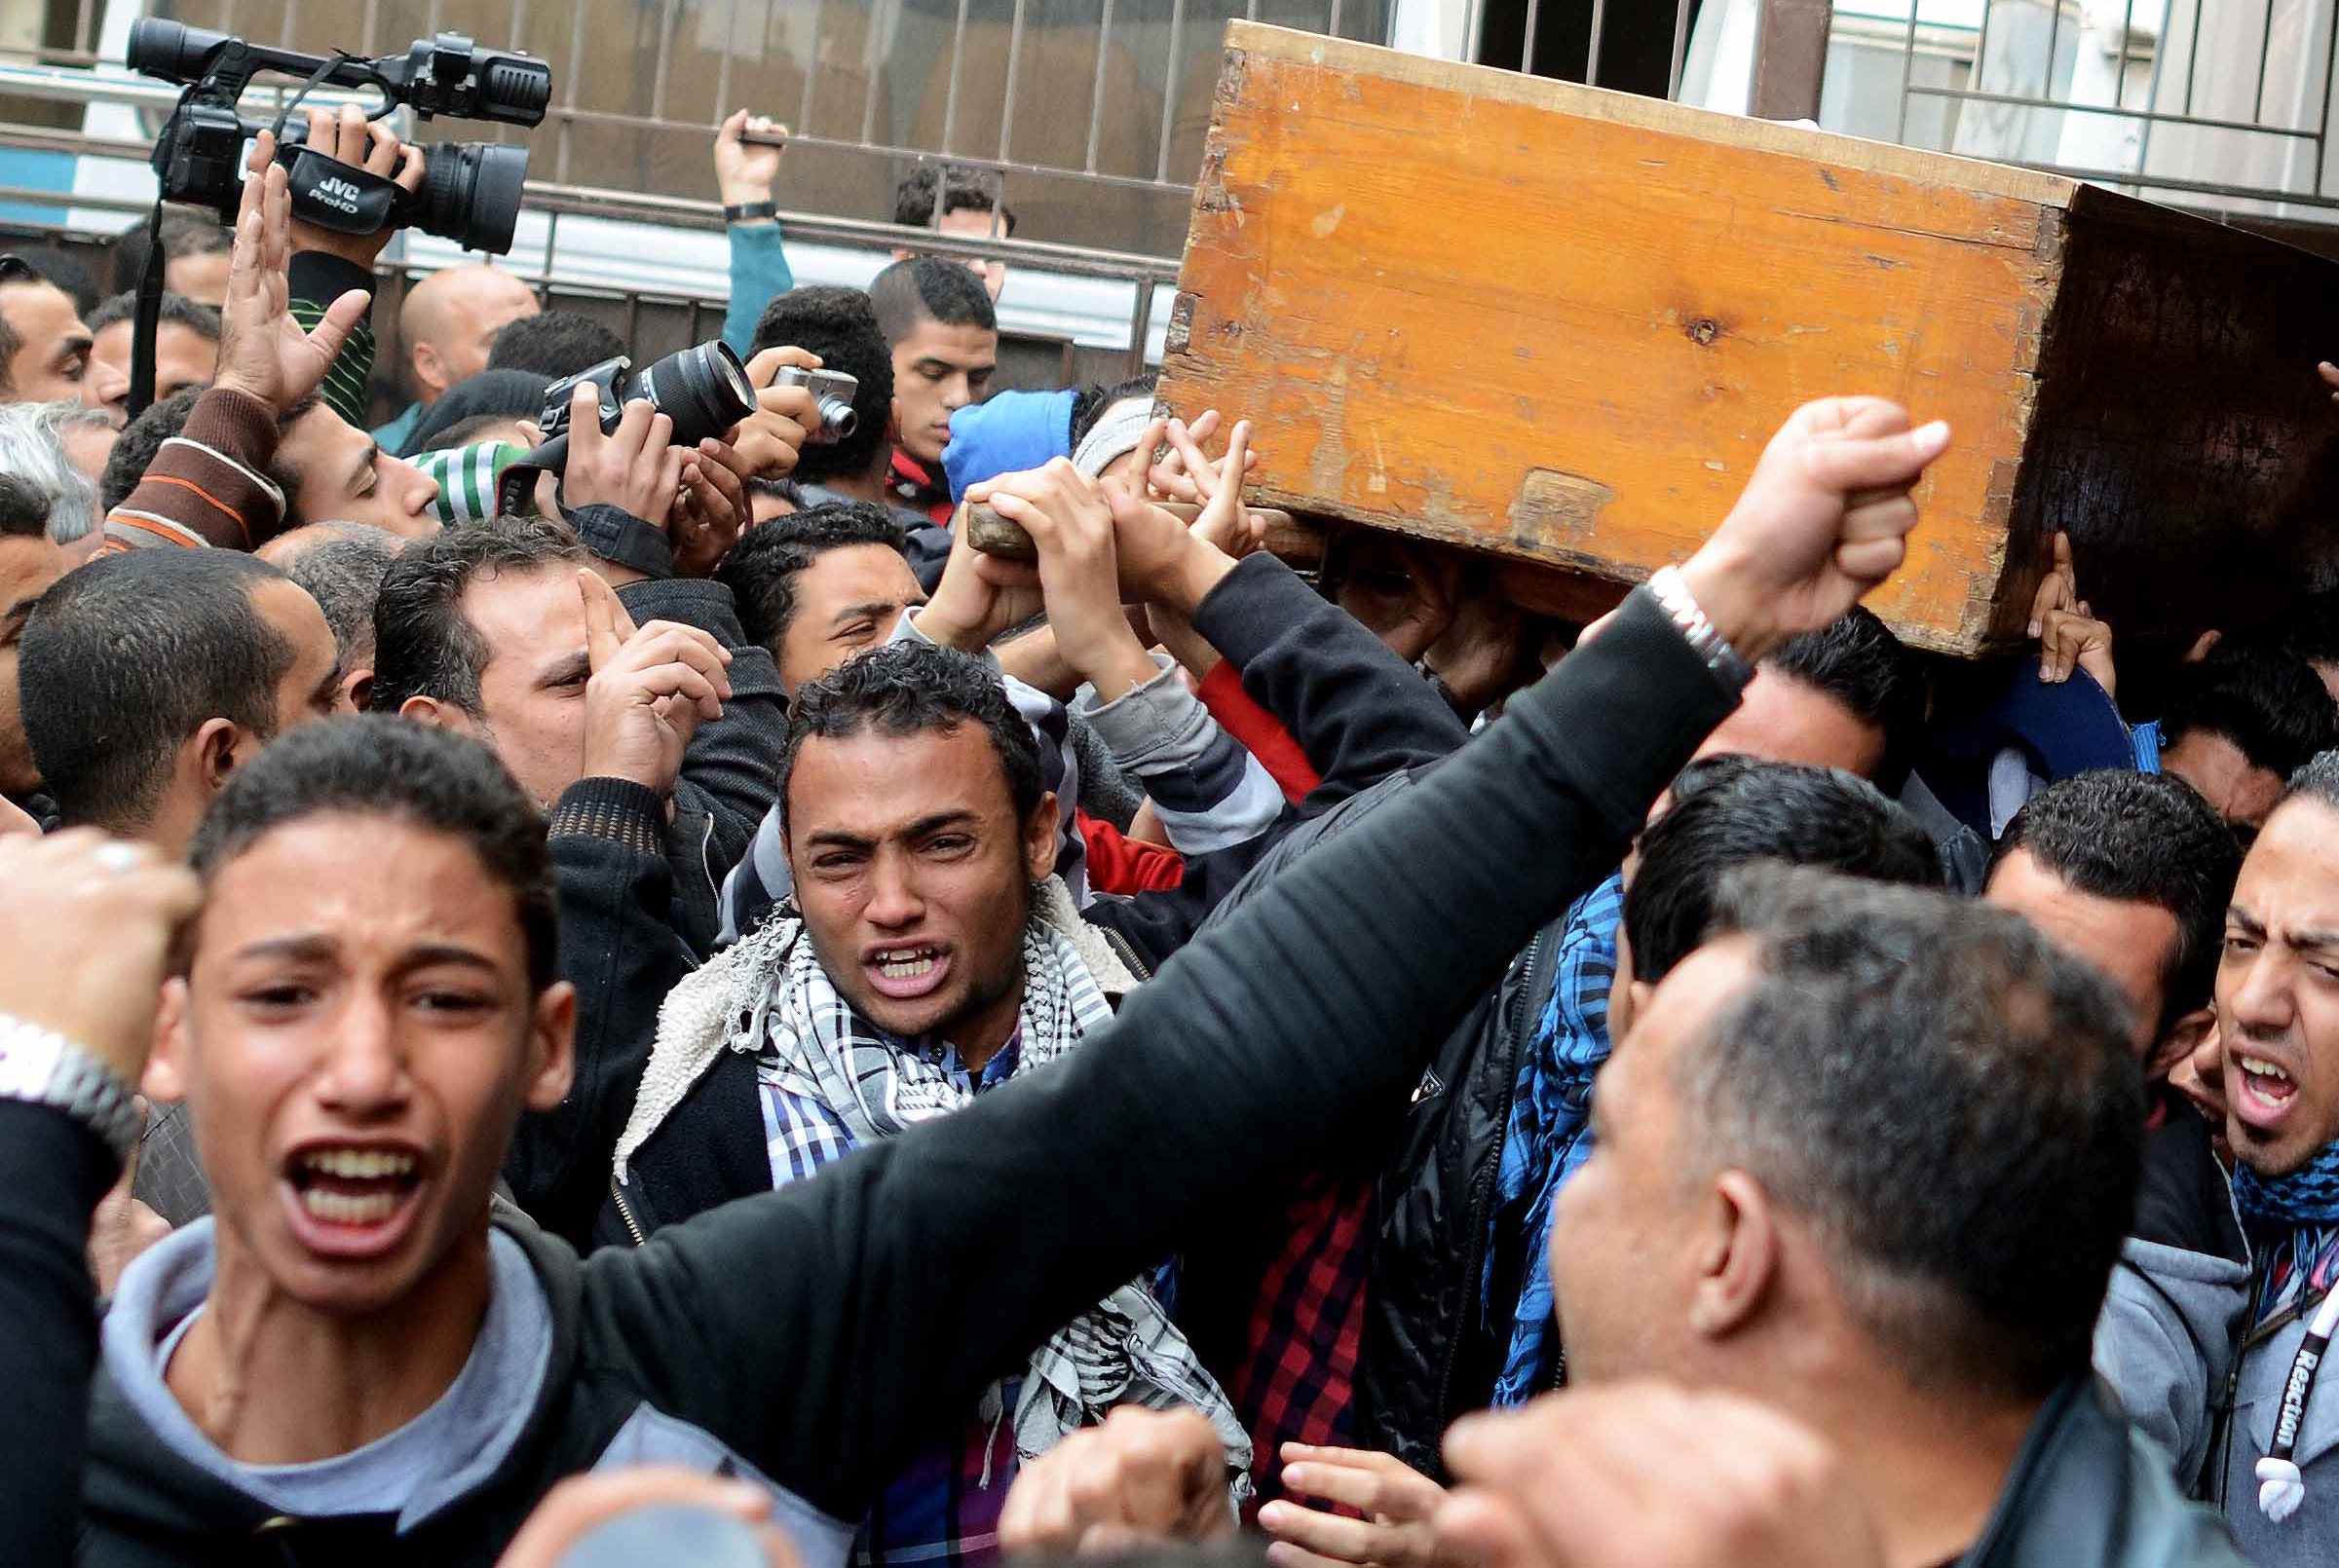 People mourn as they carry the coffin of one of the victims of clashes between supporters and opponents of Egypt's military, on January 26, 2014 outside the Zinhom Morgue, outside Cairo, Egypt. Nearly 50 people died in weekend clashes between supporters and opponents of Egypt's military, as media outlets on January 25, 2014 hailed rallies urging the army chief to run for the presidency.     (AFP PHOTO MOHAMED EL-SHAHED)